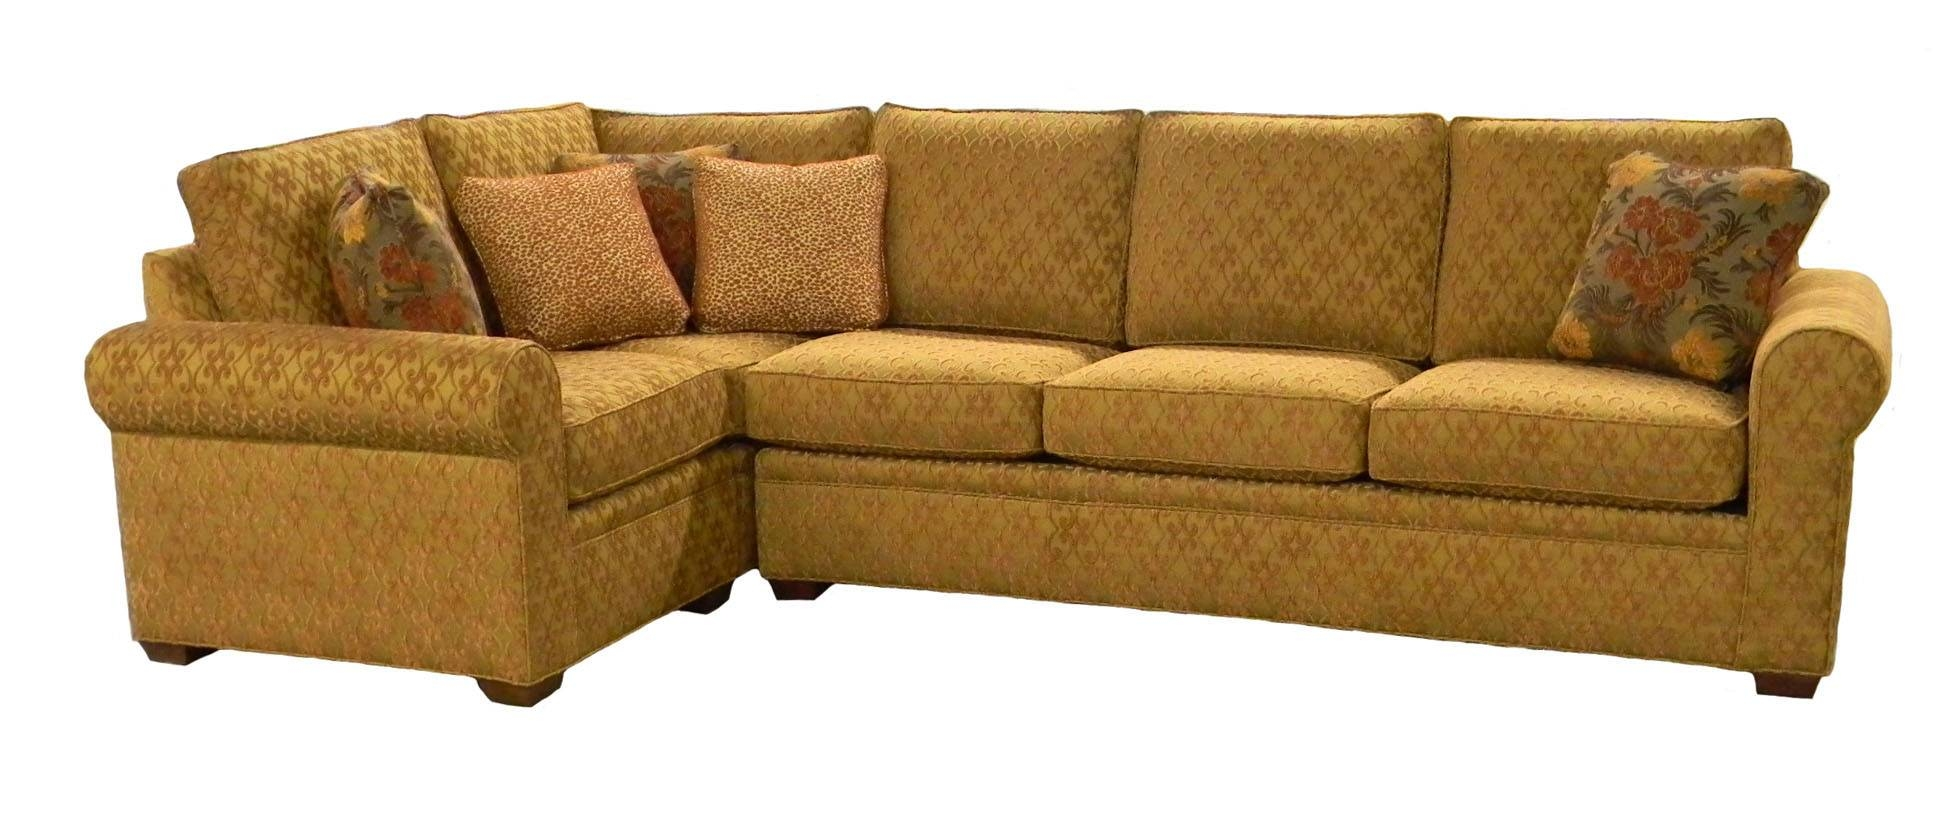 Https://www.cleanupflorida/wp-Content/uploads/ within Compact Sectional Sofas (Image 4 of 30)